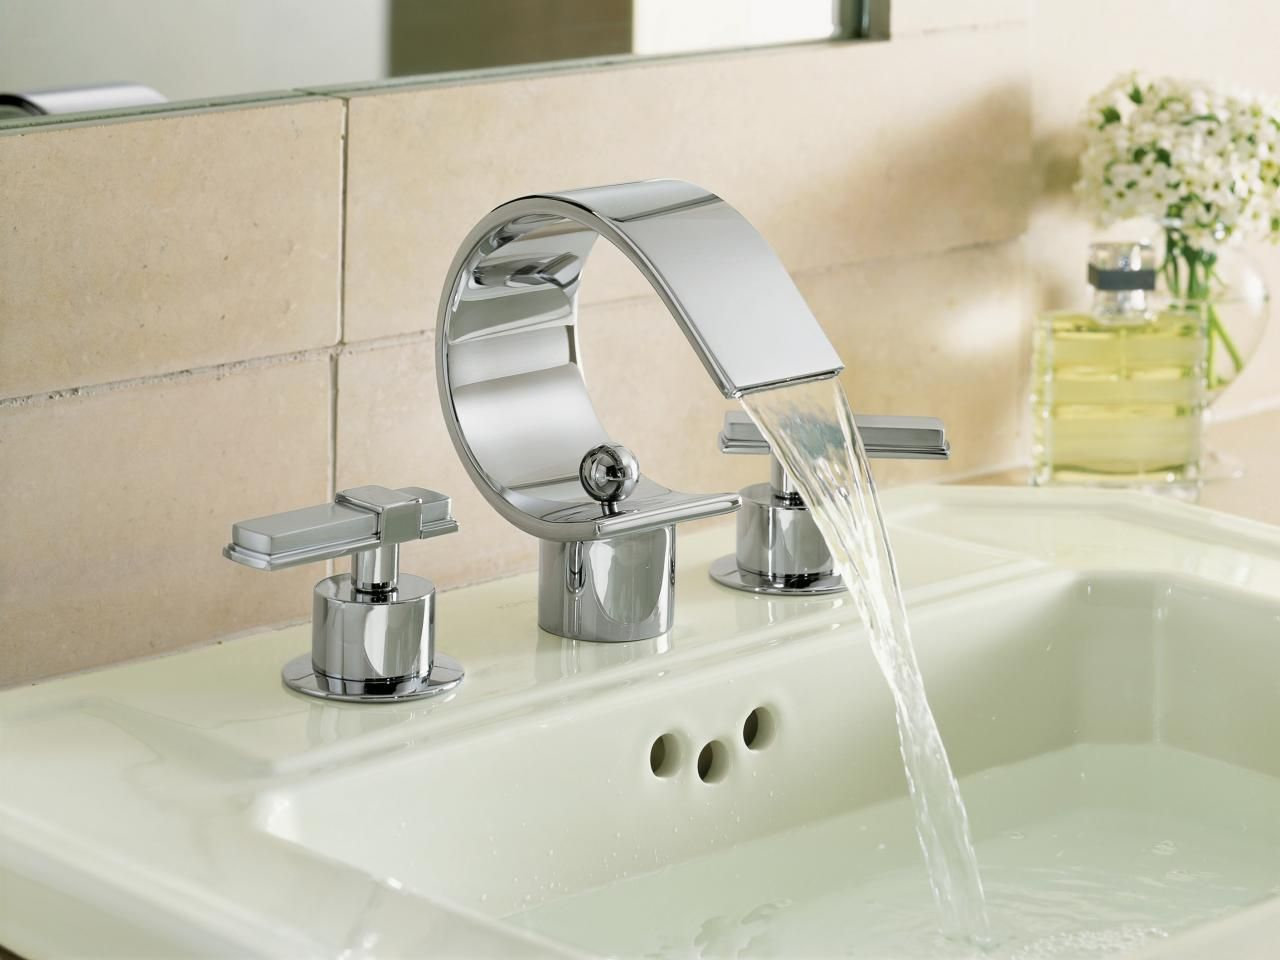 Bathroom Faucets   White sink, Faucet and Modern bathroom